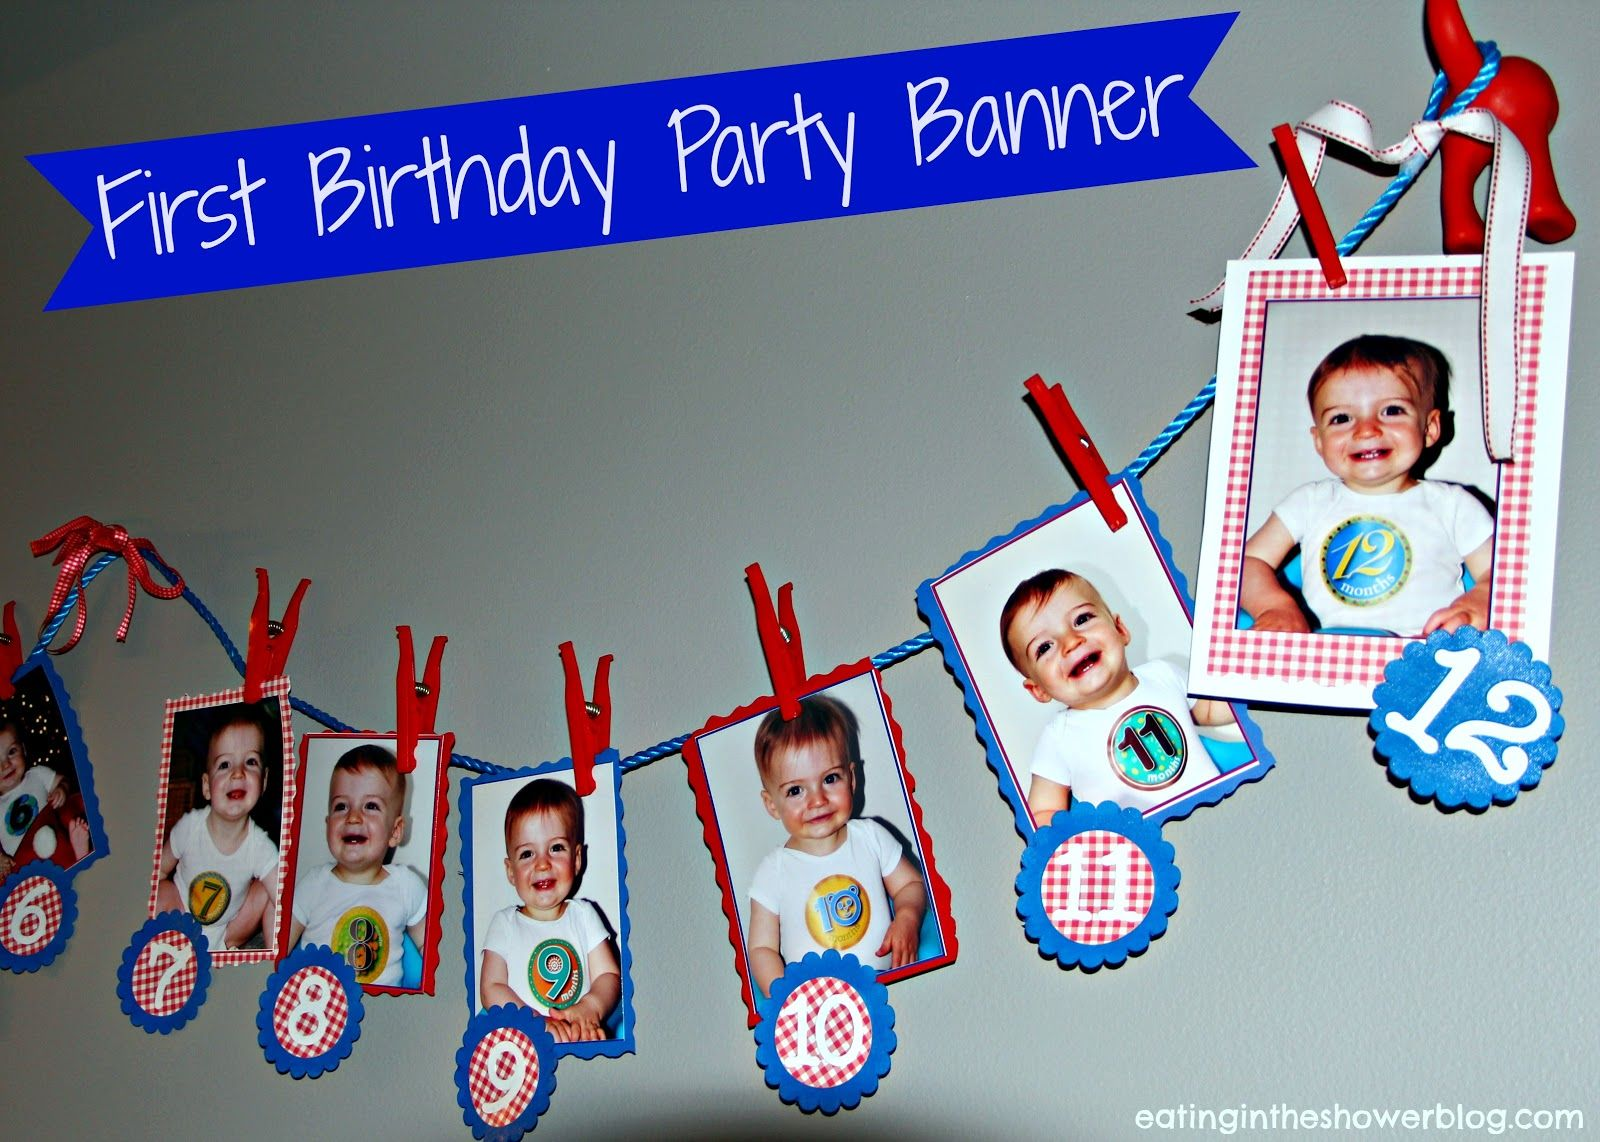 Puppy Dog Tails First Birthday Party Banners Birthdays and Dog